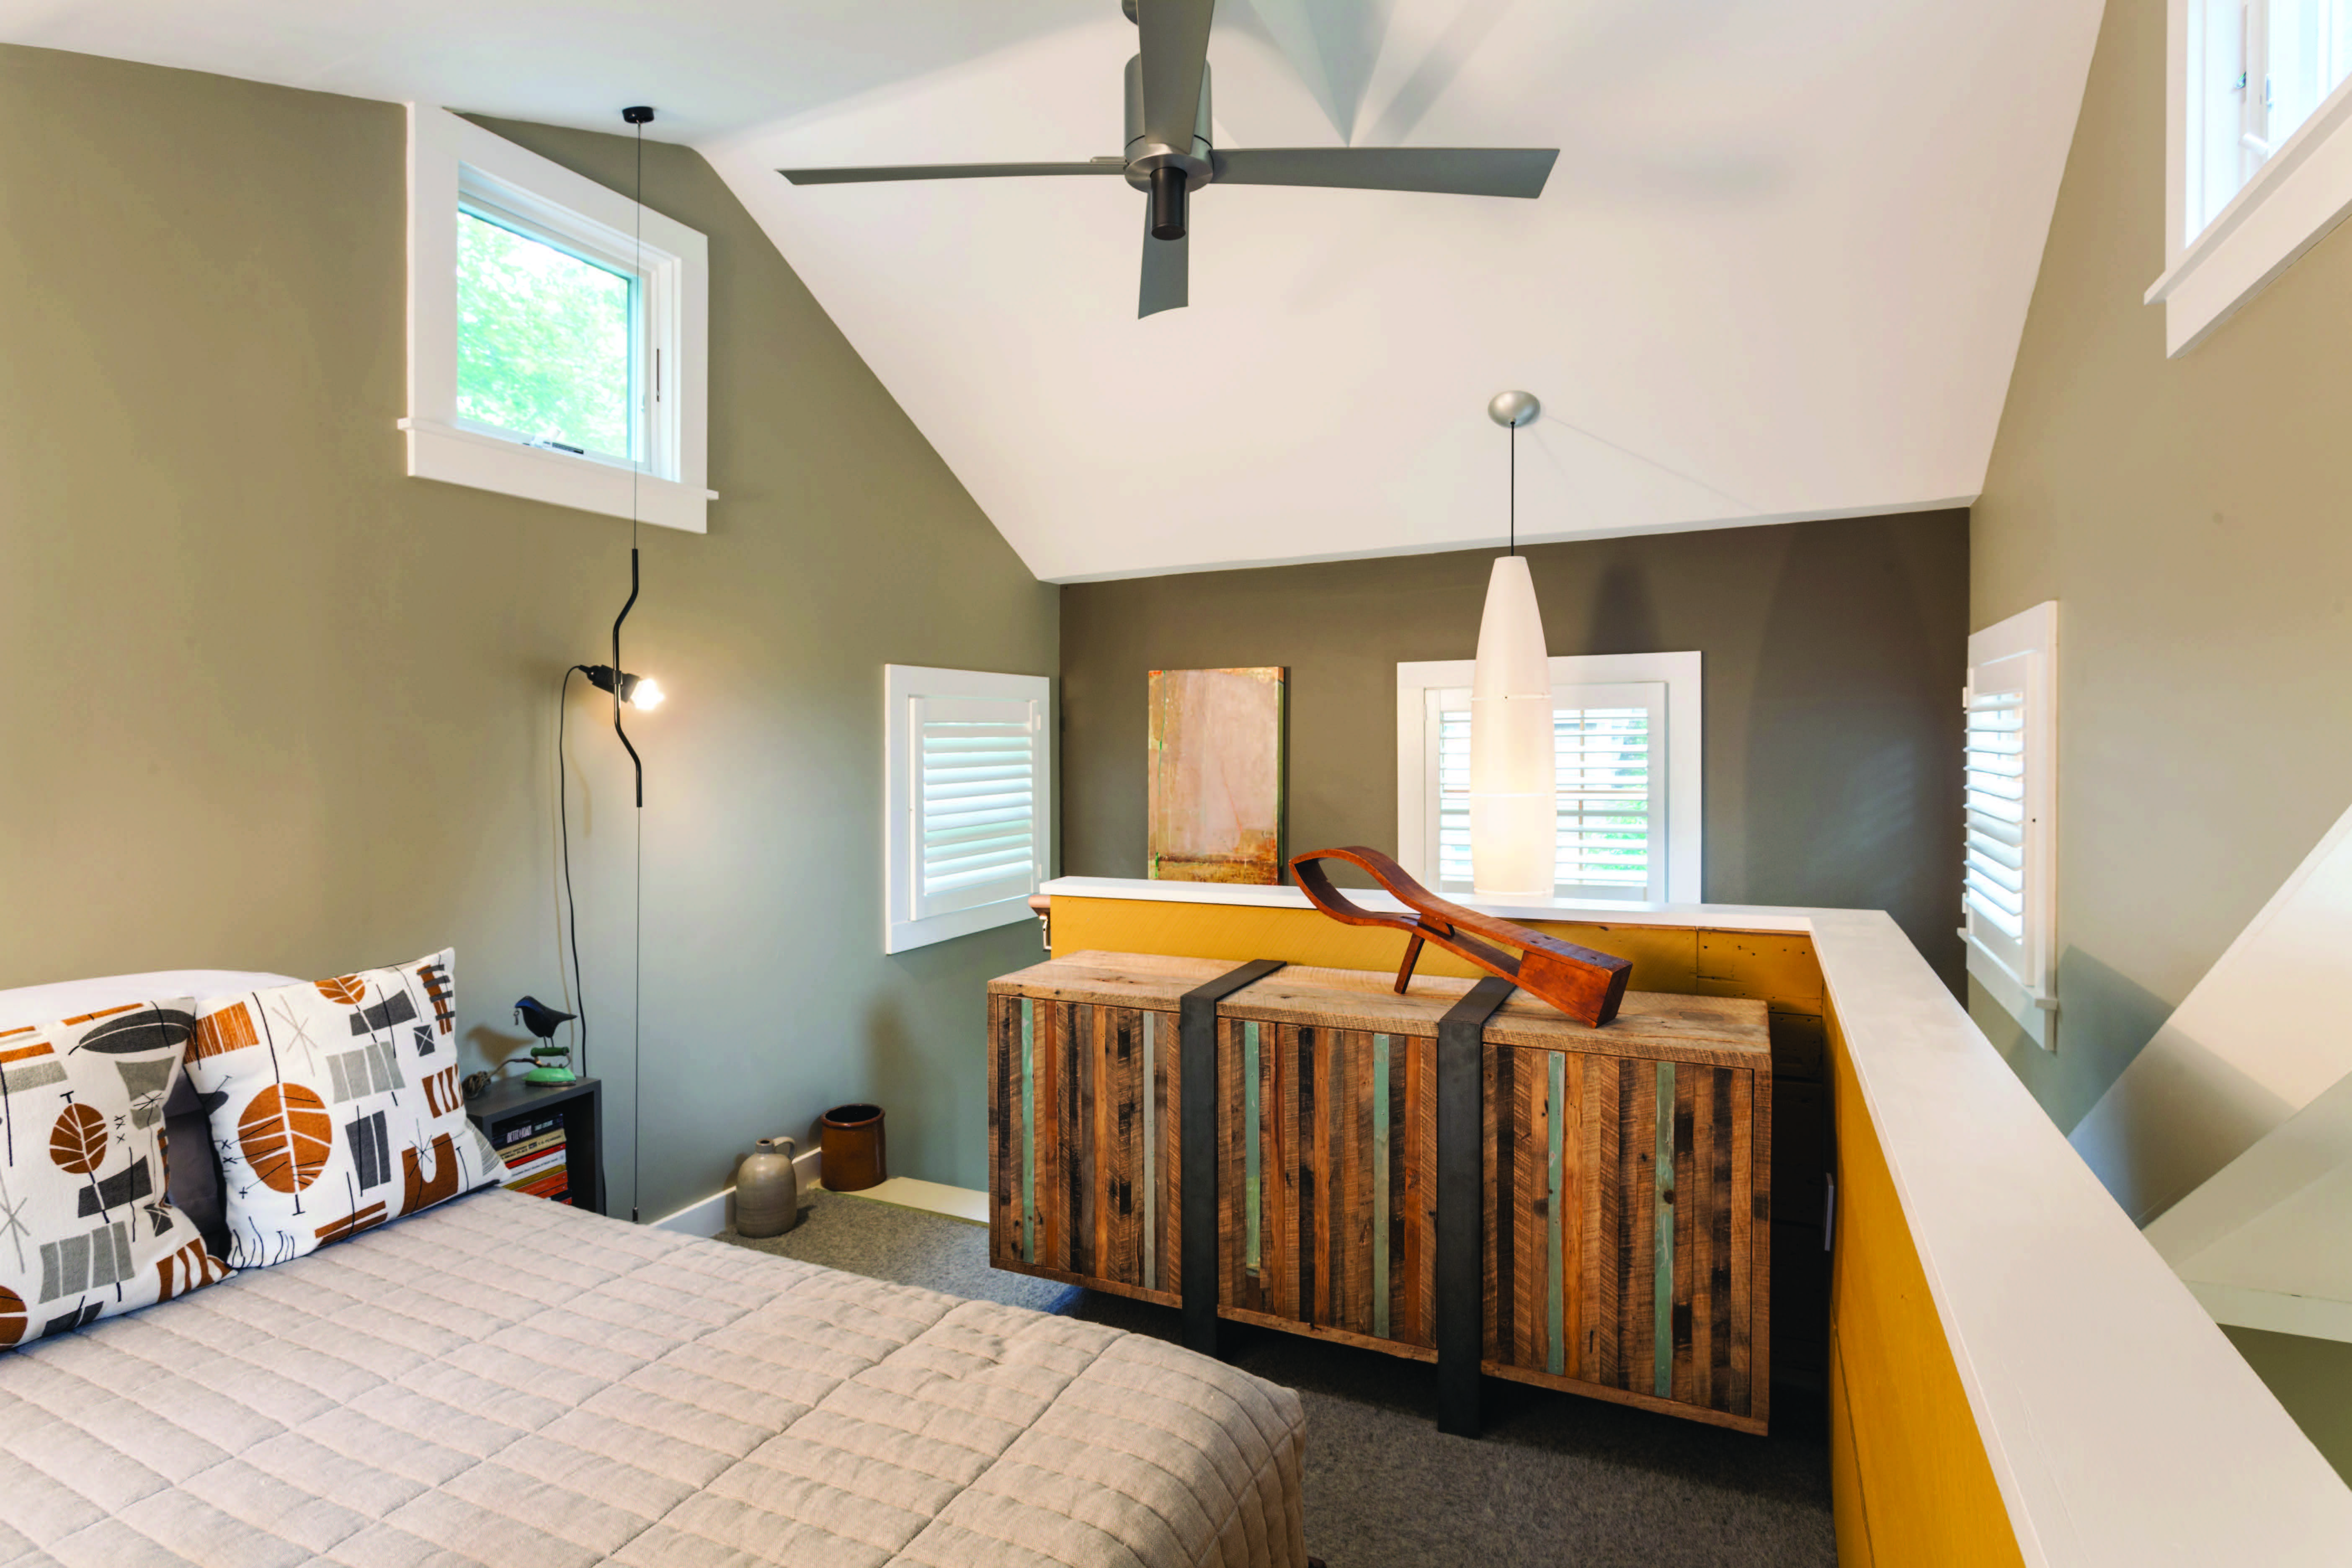 Maximizing space in a quaint summer cottage remodeling architecture whole house remodeling - Cape cod style bedroom image ...